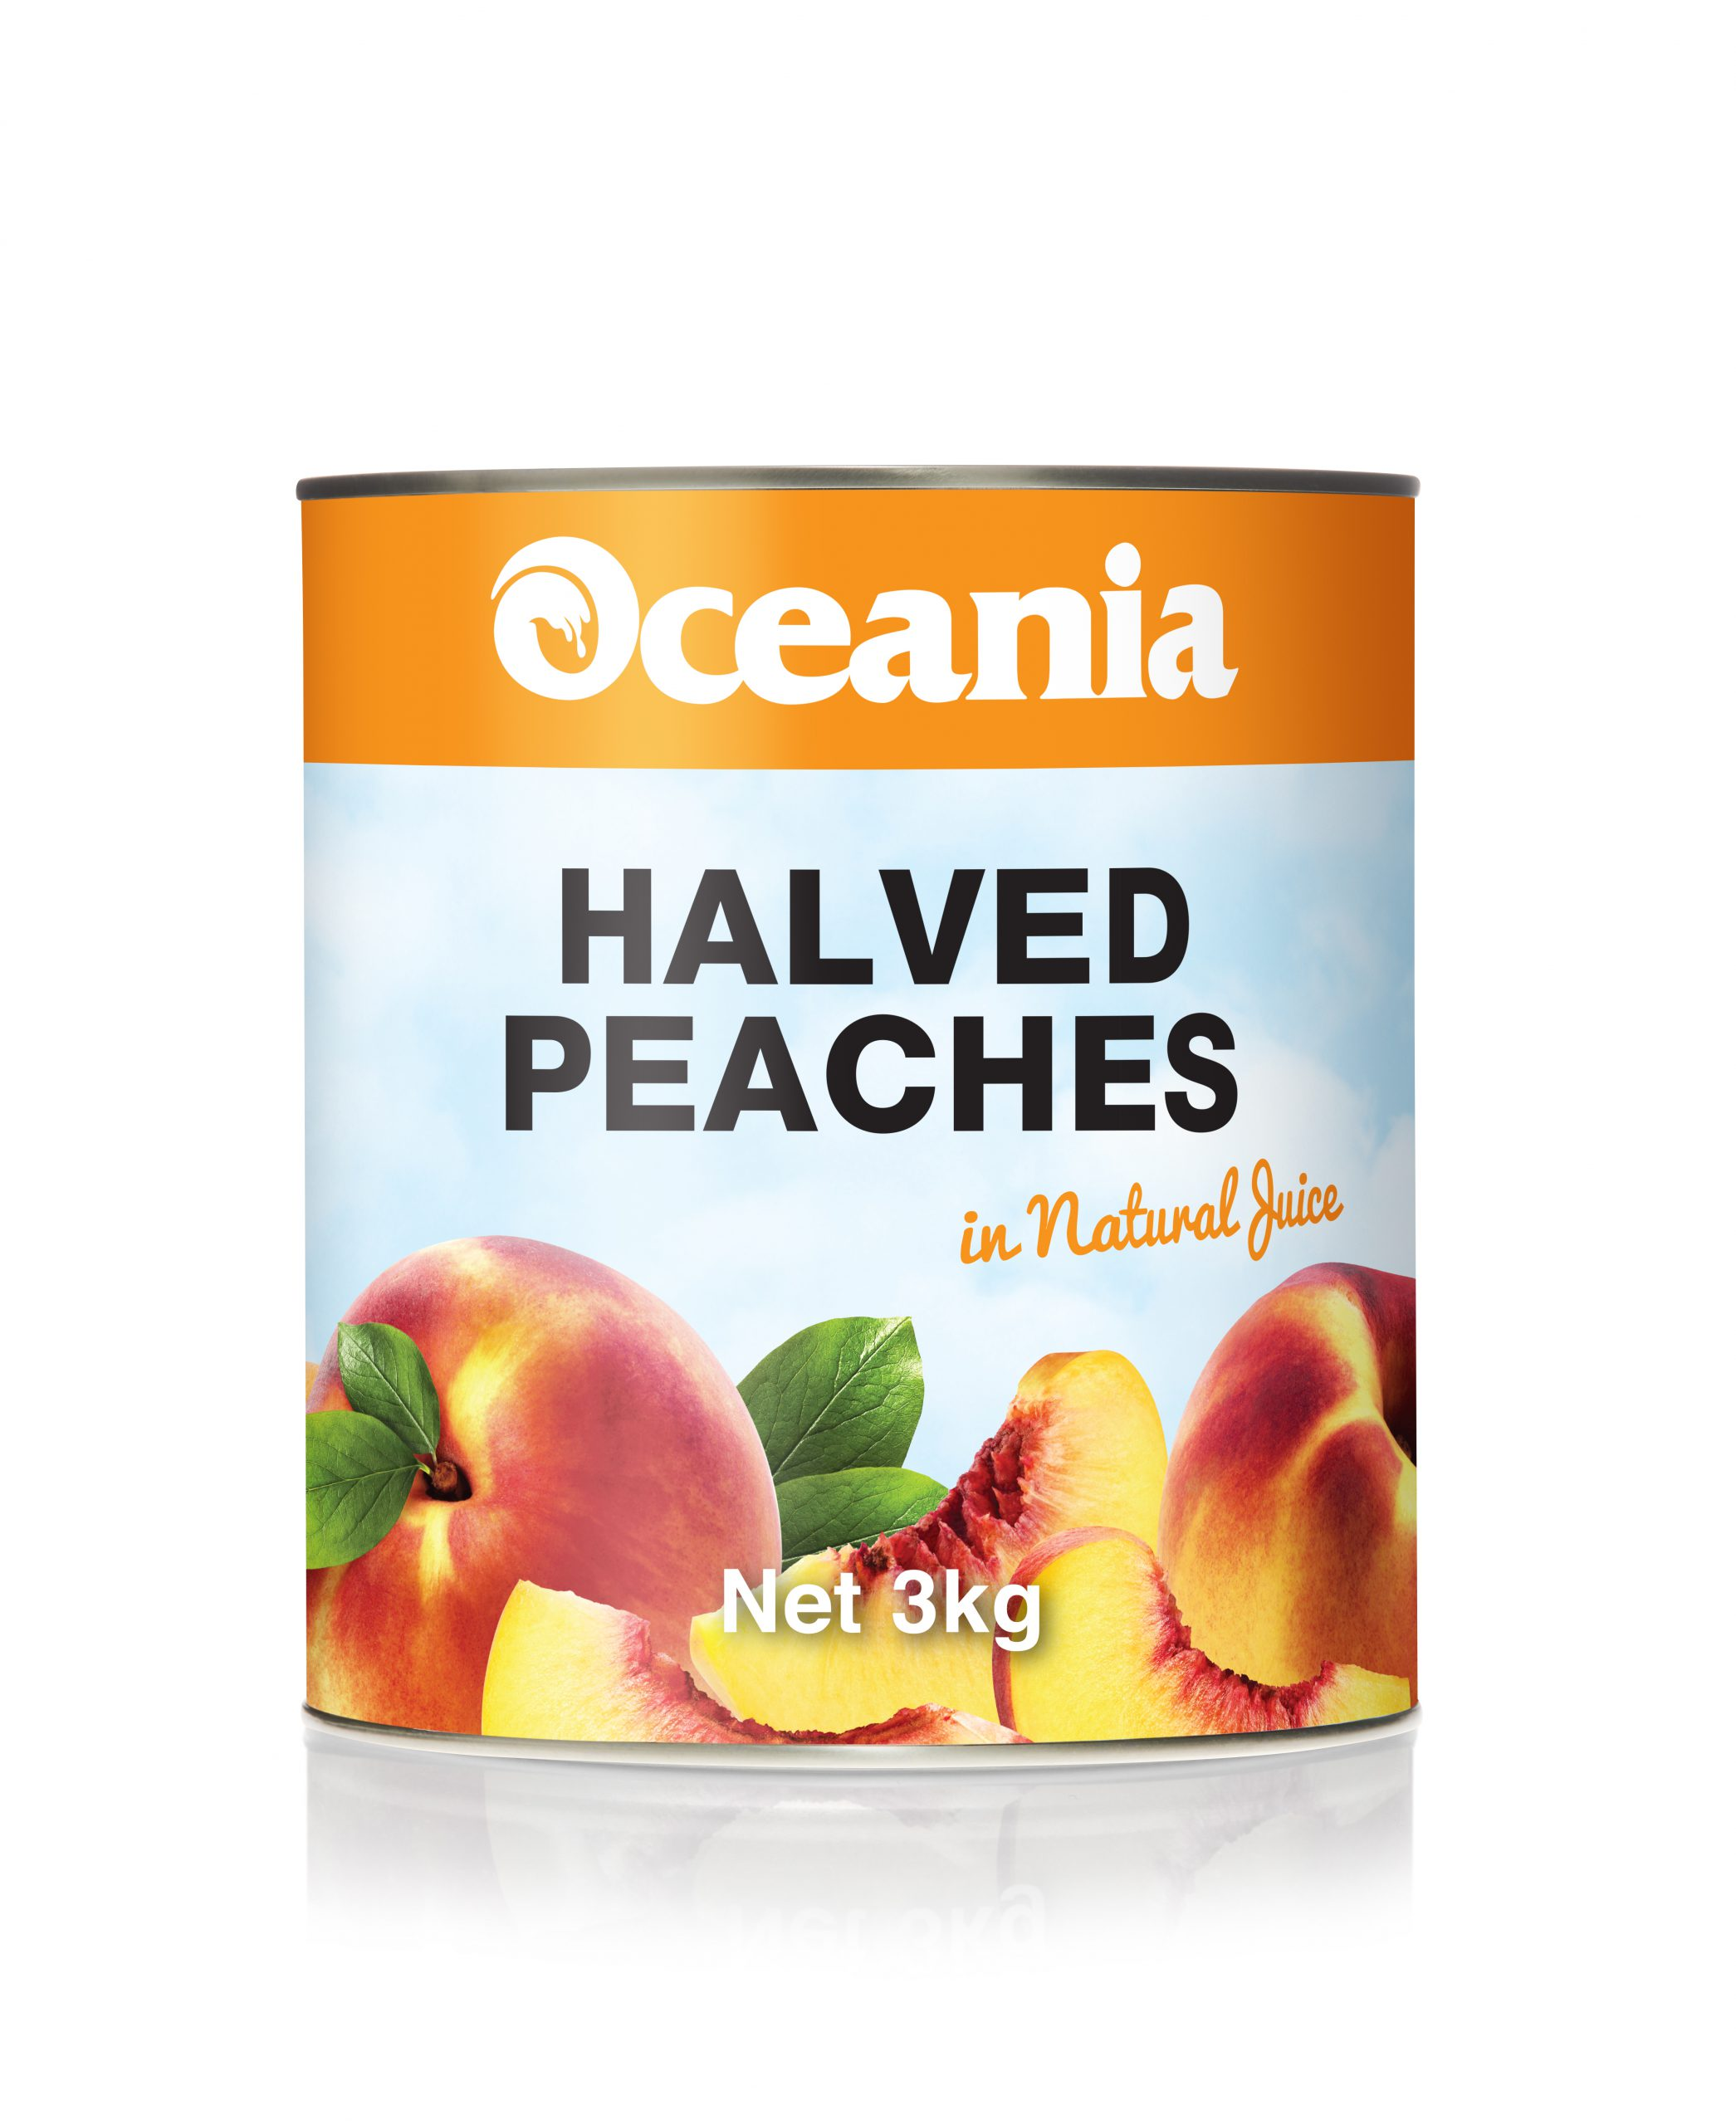 Halved Peaches in Natural Juice